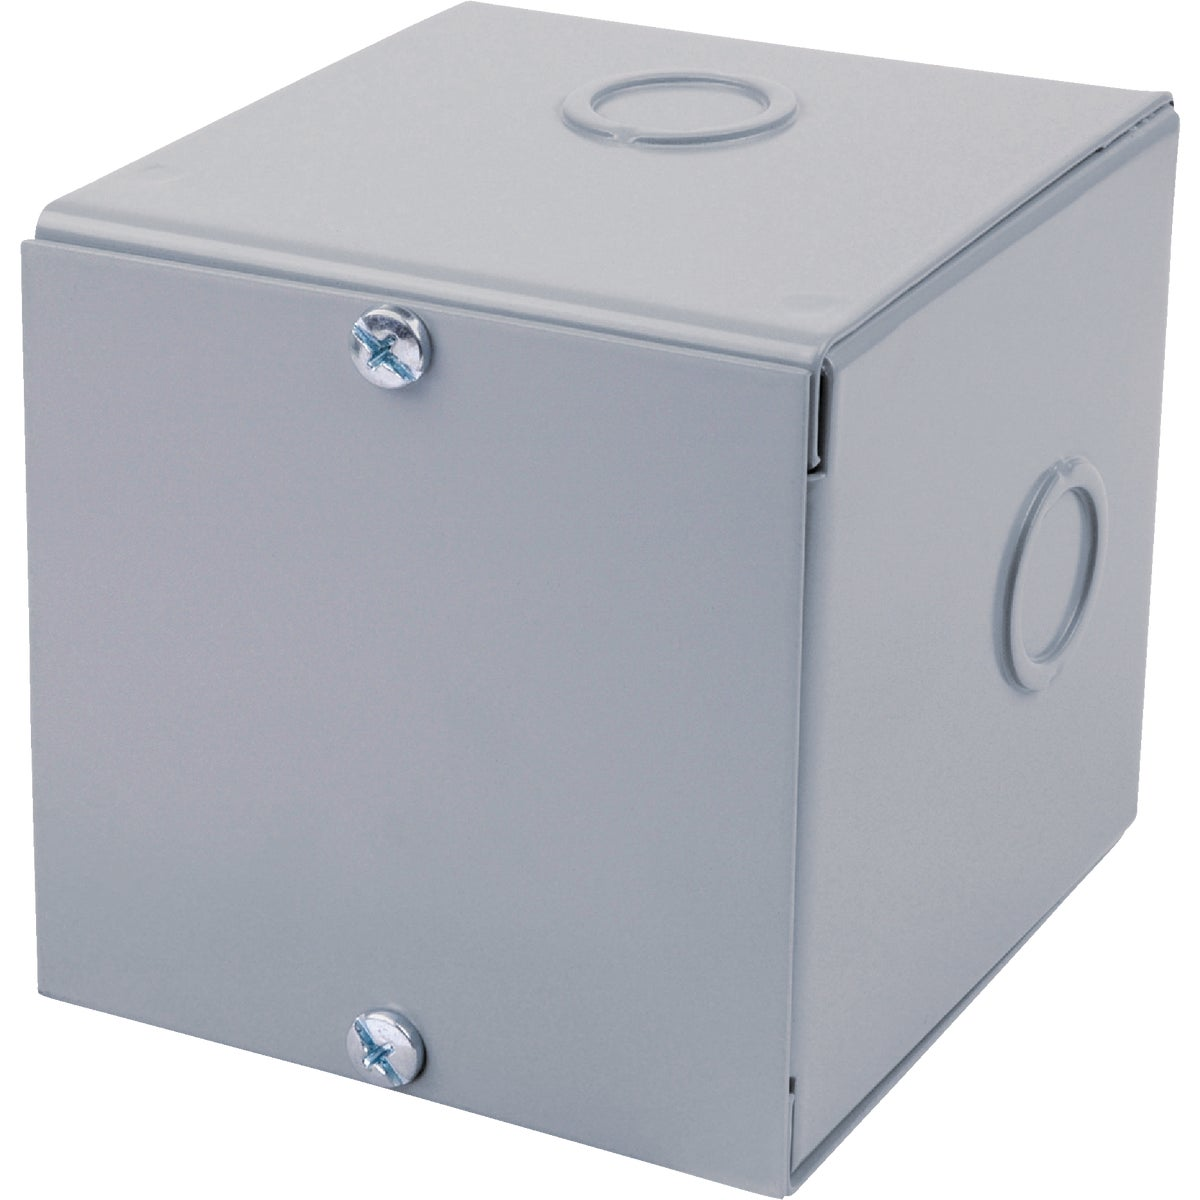 6X6X4 ENCLOSURE - AB-664SBGK003 by Thomas & Betts